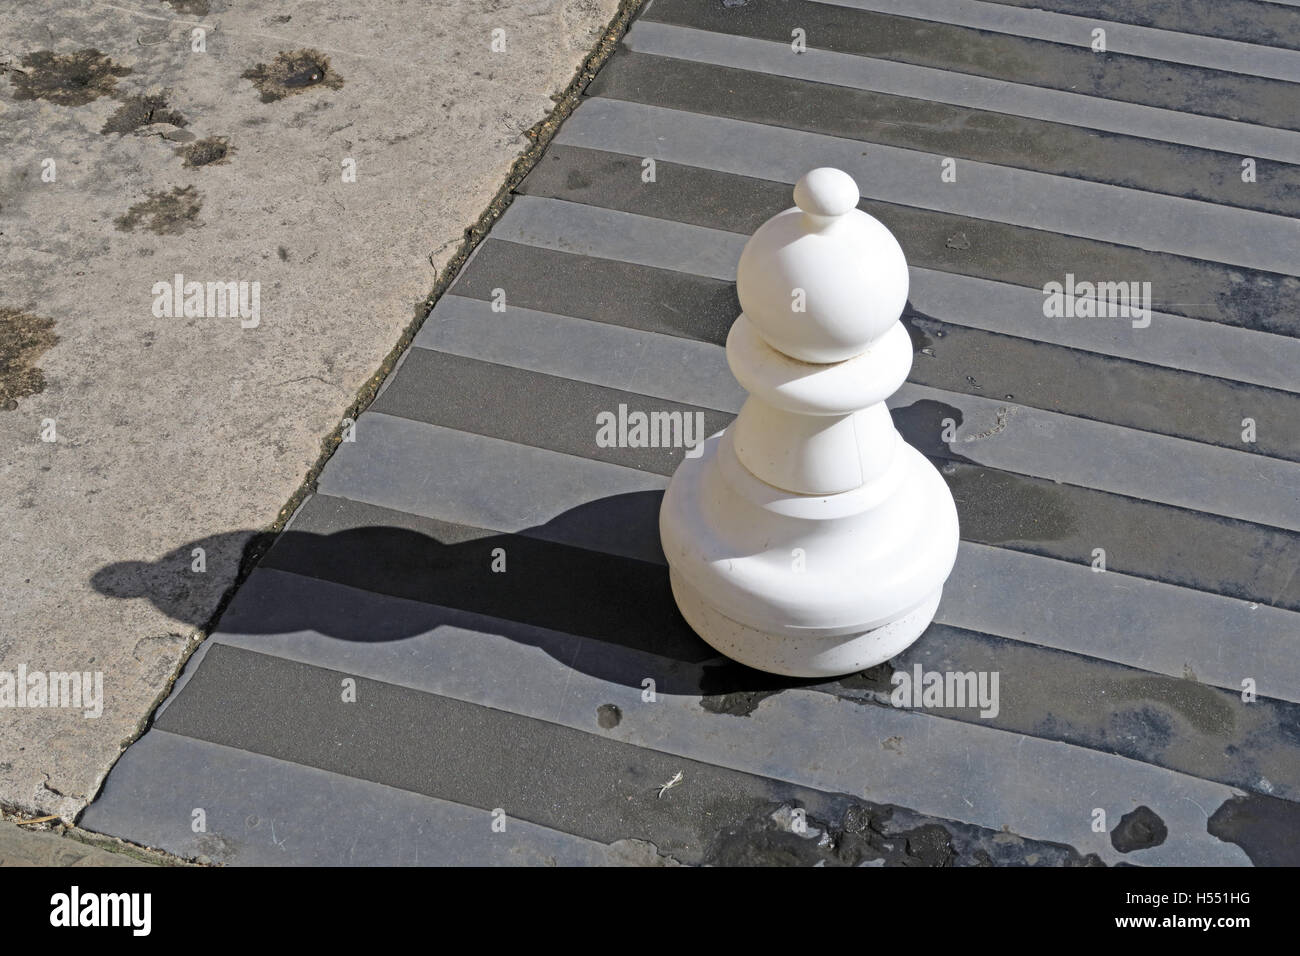 Giant Chess Pieces, London, England, UK - Stock Image